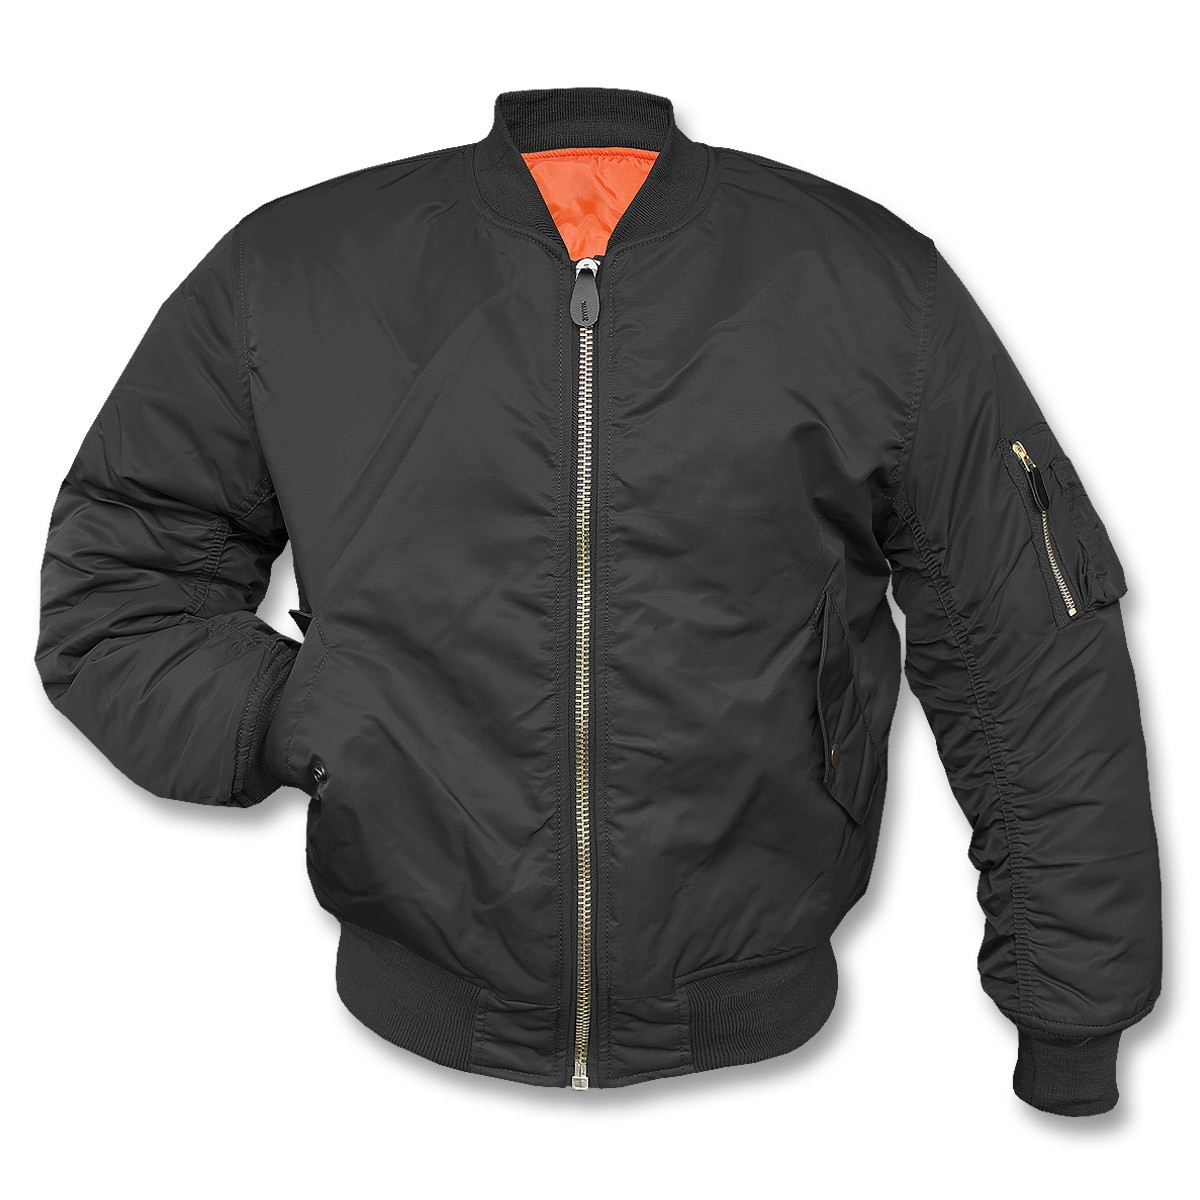 online retailer 709c9 05230 GIACCA BOMBER MA1